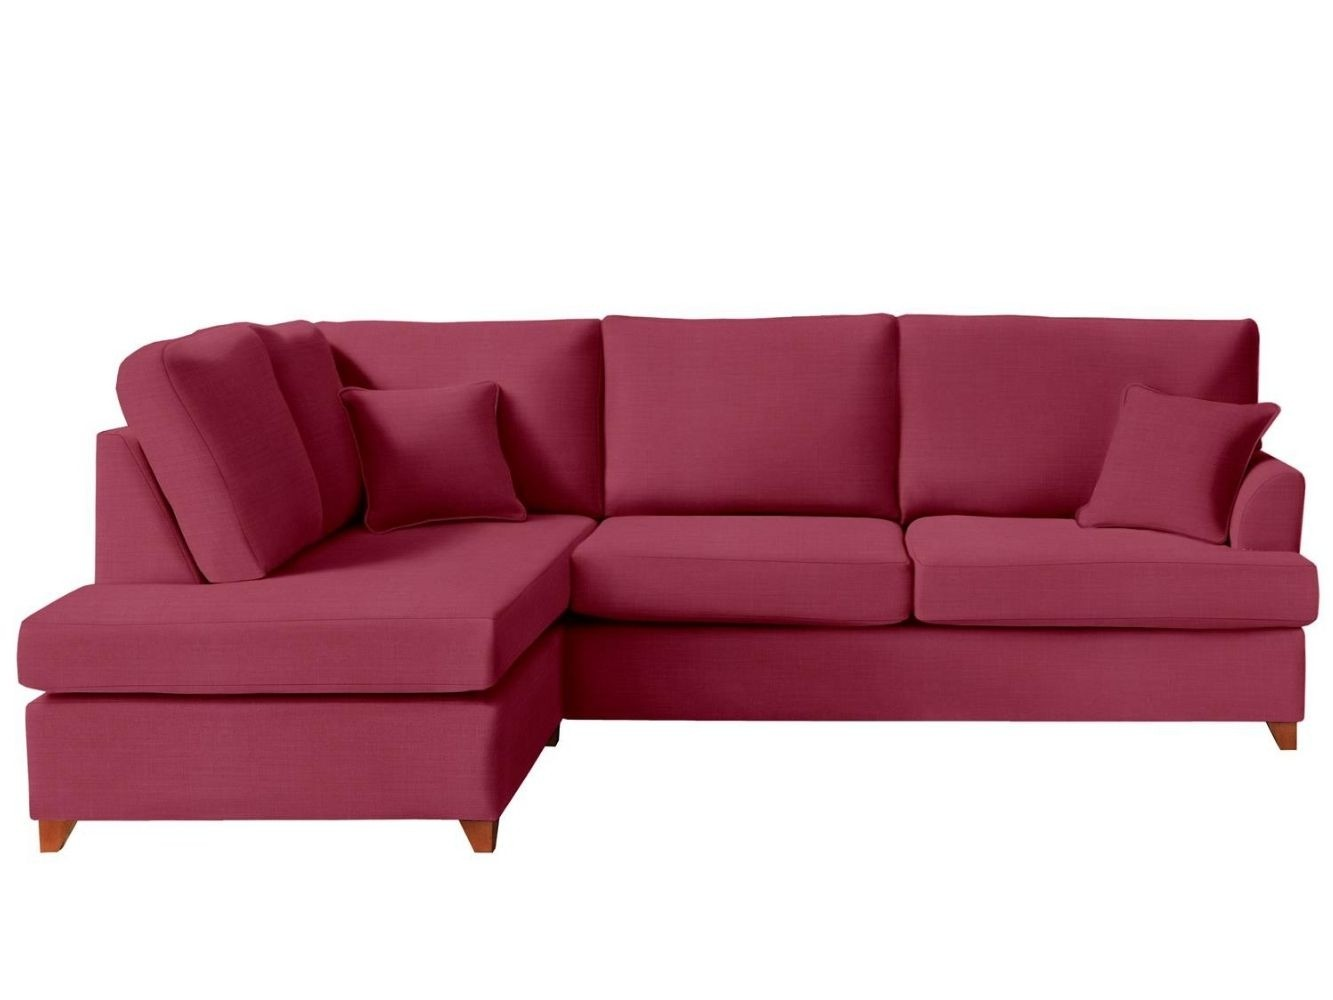 This is how I look in Brushed Cotton Cherry with reflex foam seat cushions